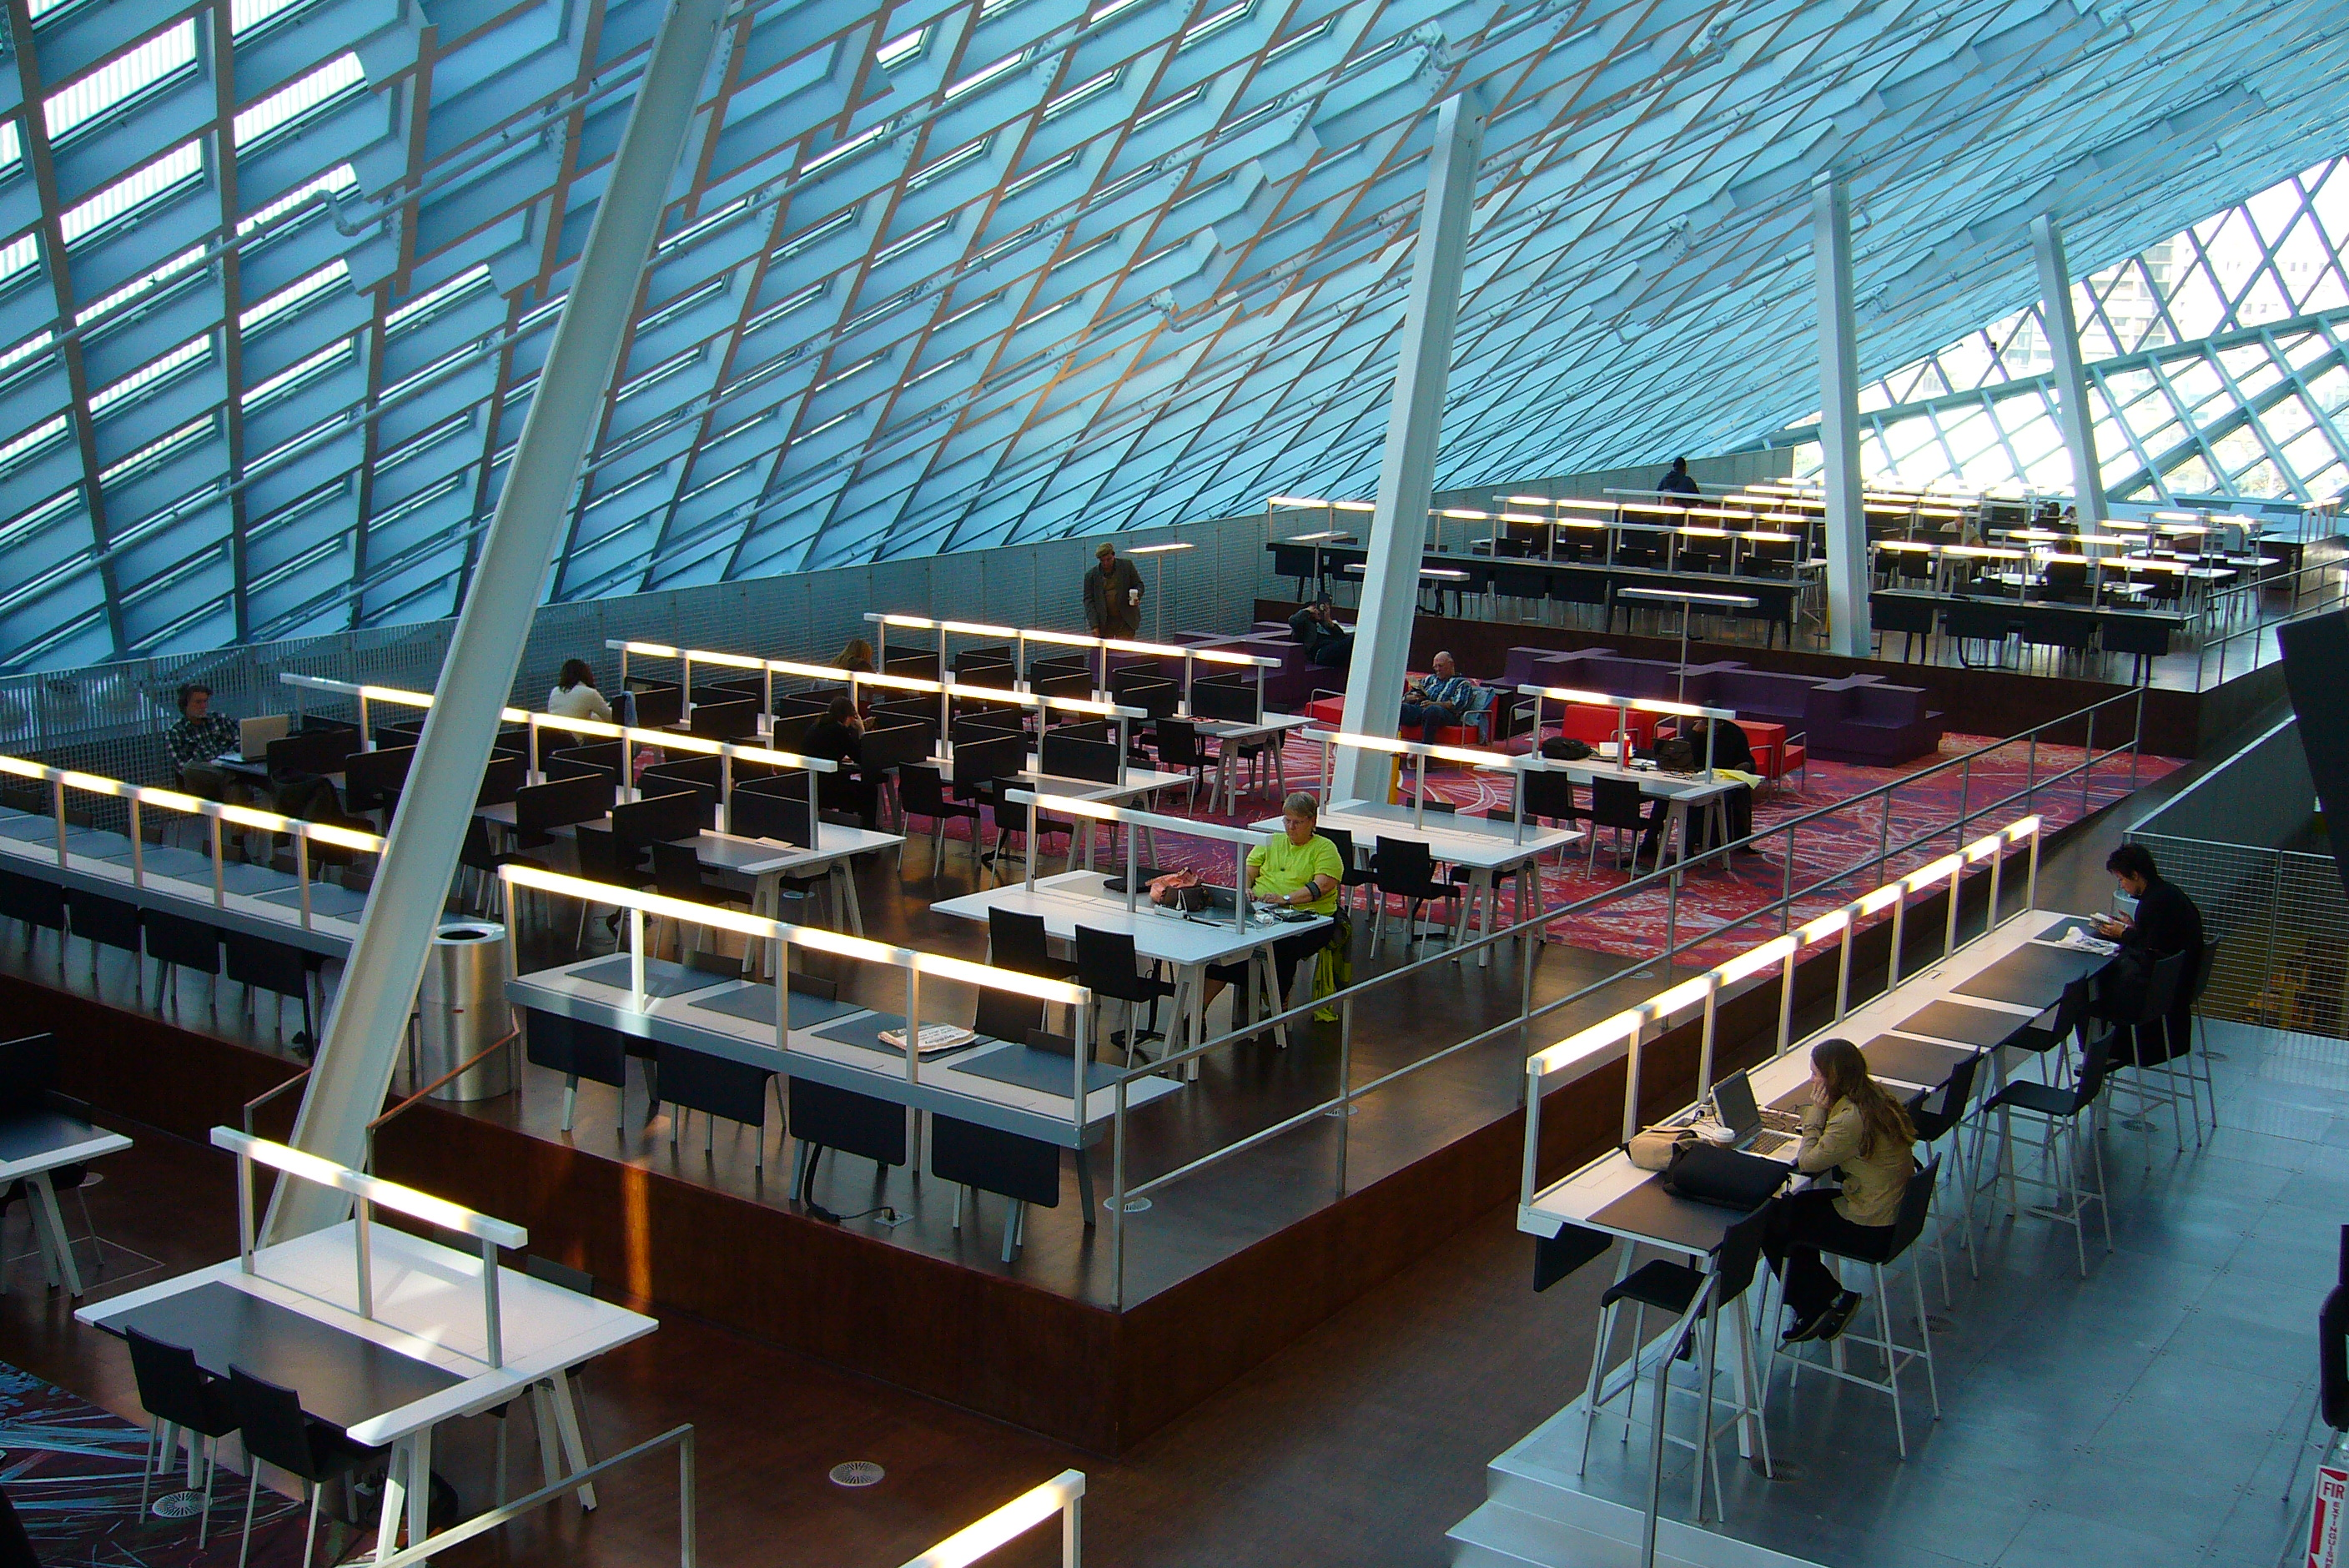 Reading room in the main branch of the Seattle Public Library